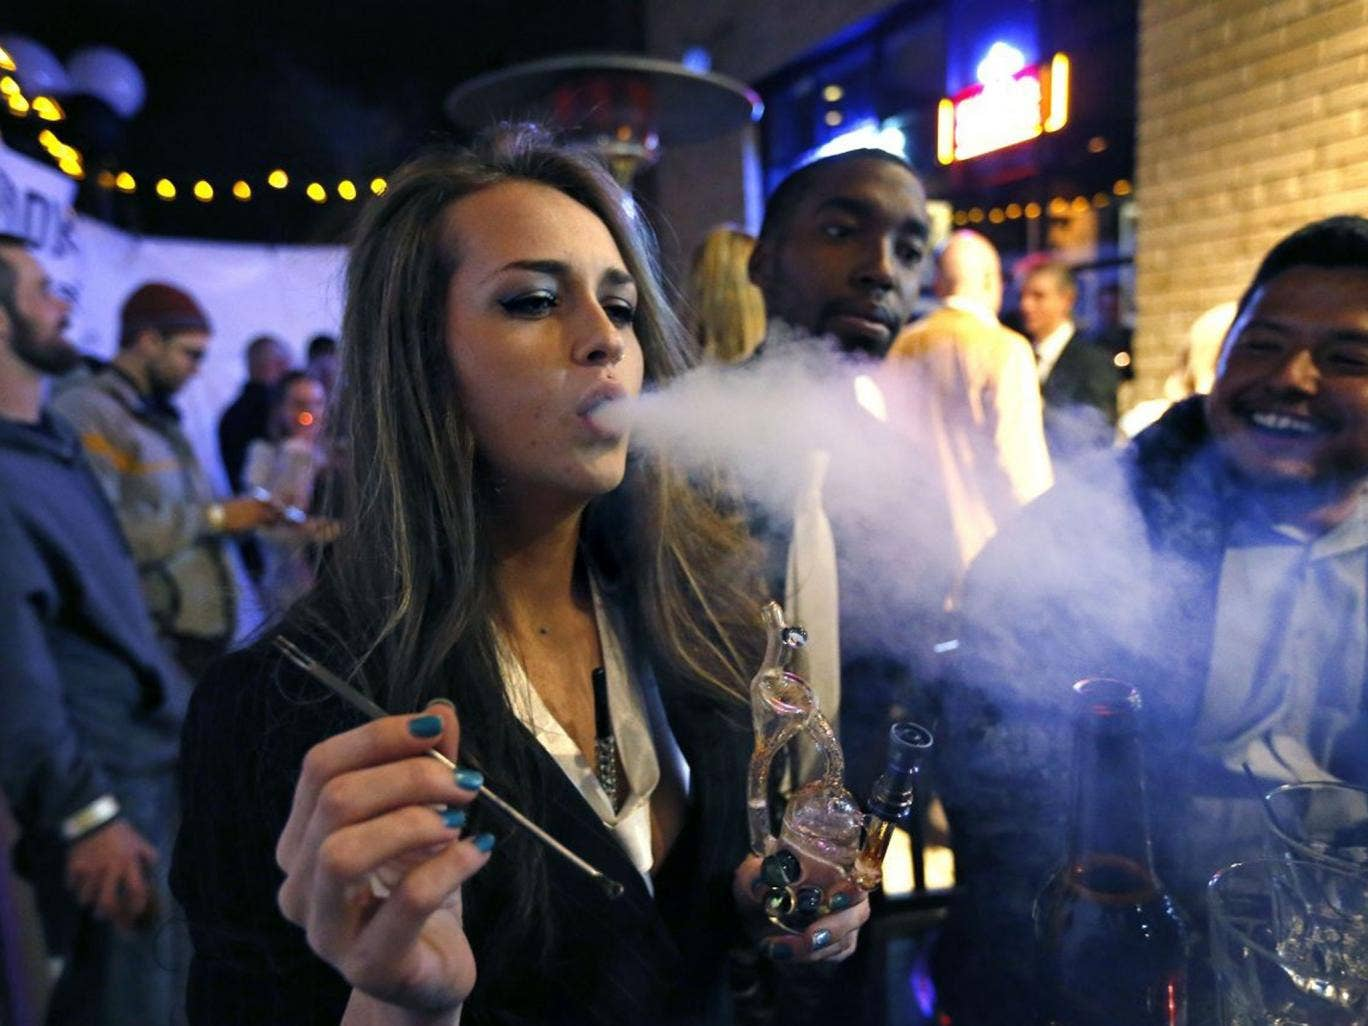 Partygoers smoke marijuana during a Prohibition-era themed New Year's Eve party celebrating the start of retail pot sales in Denver